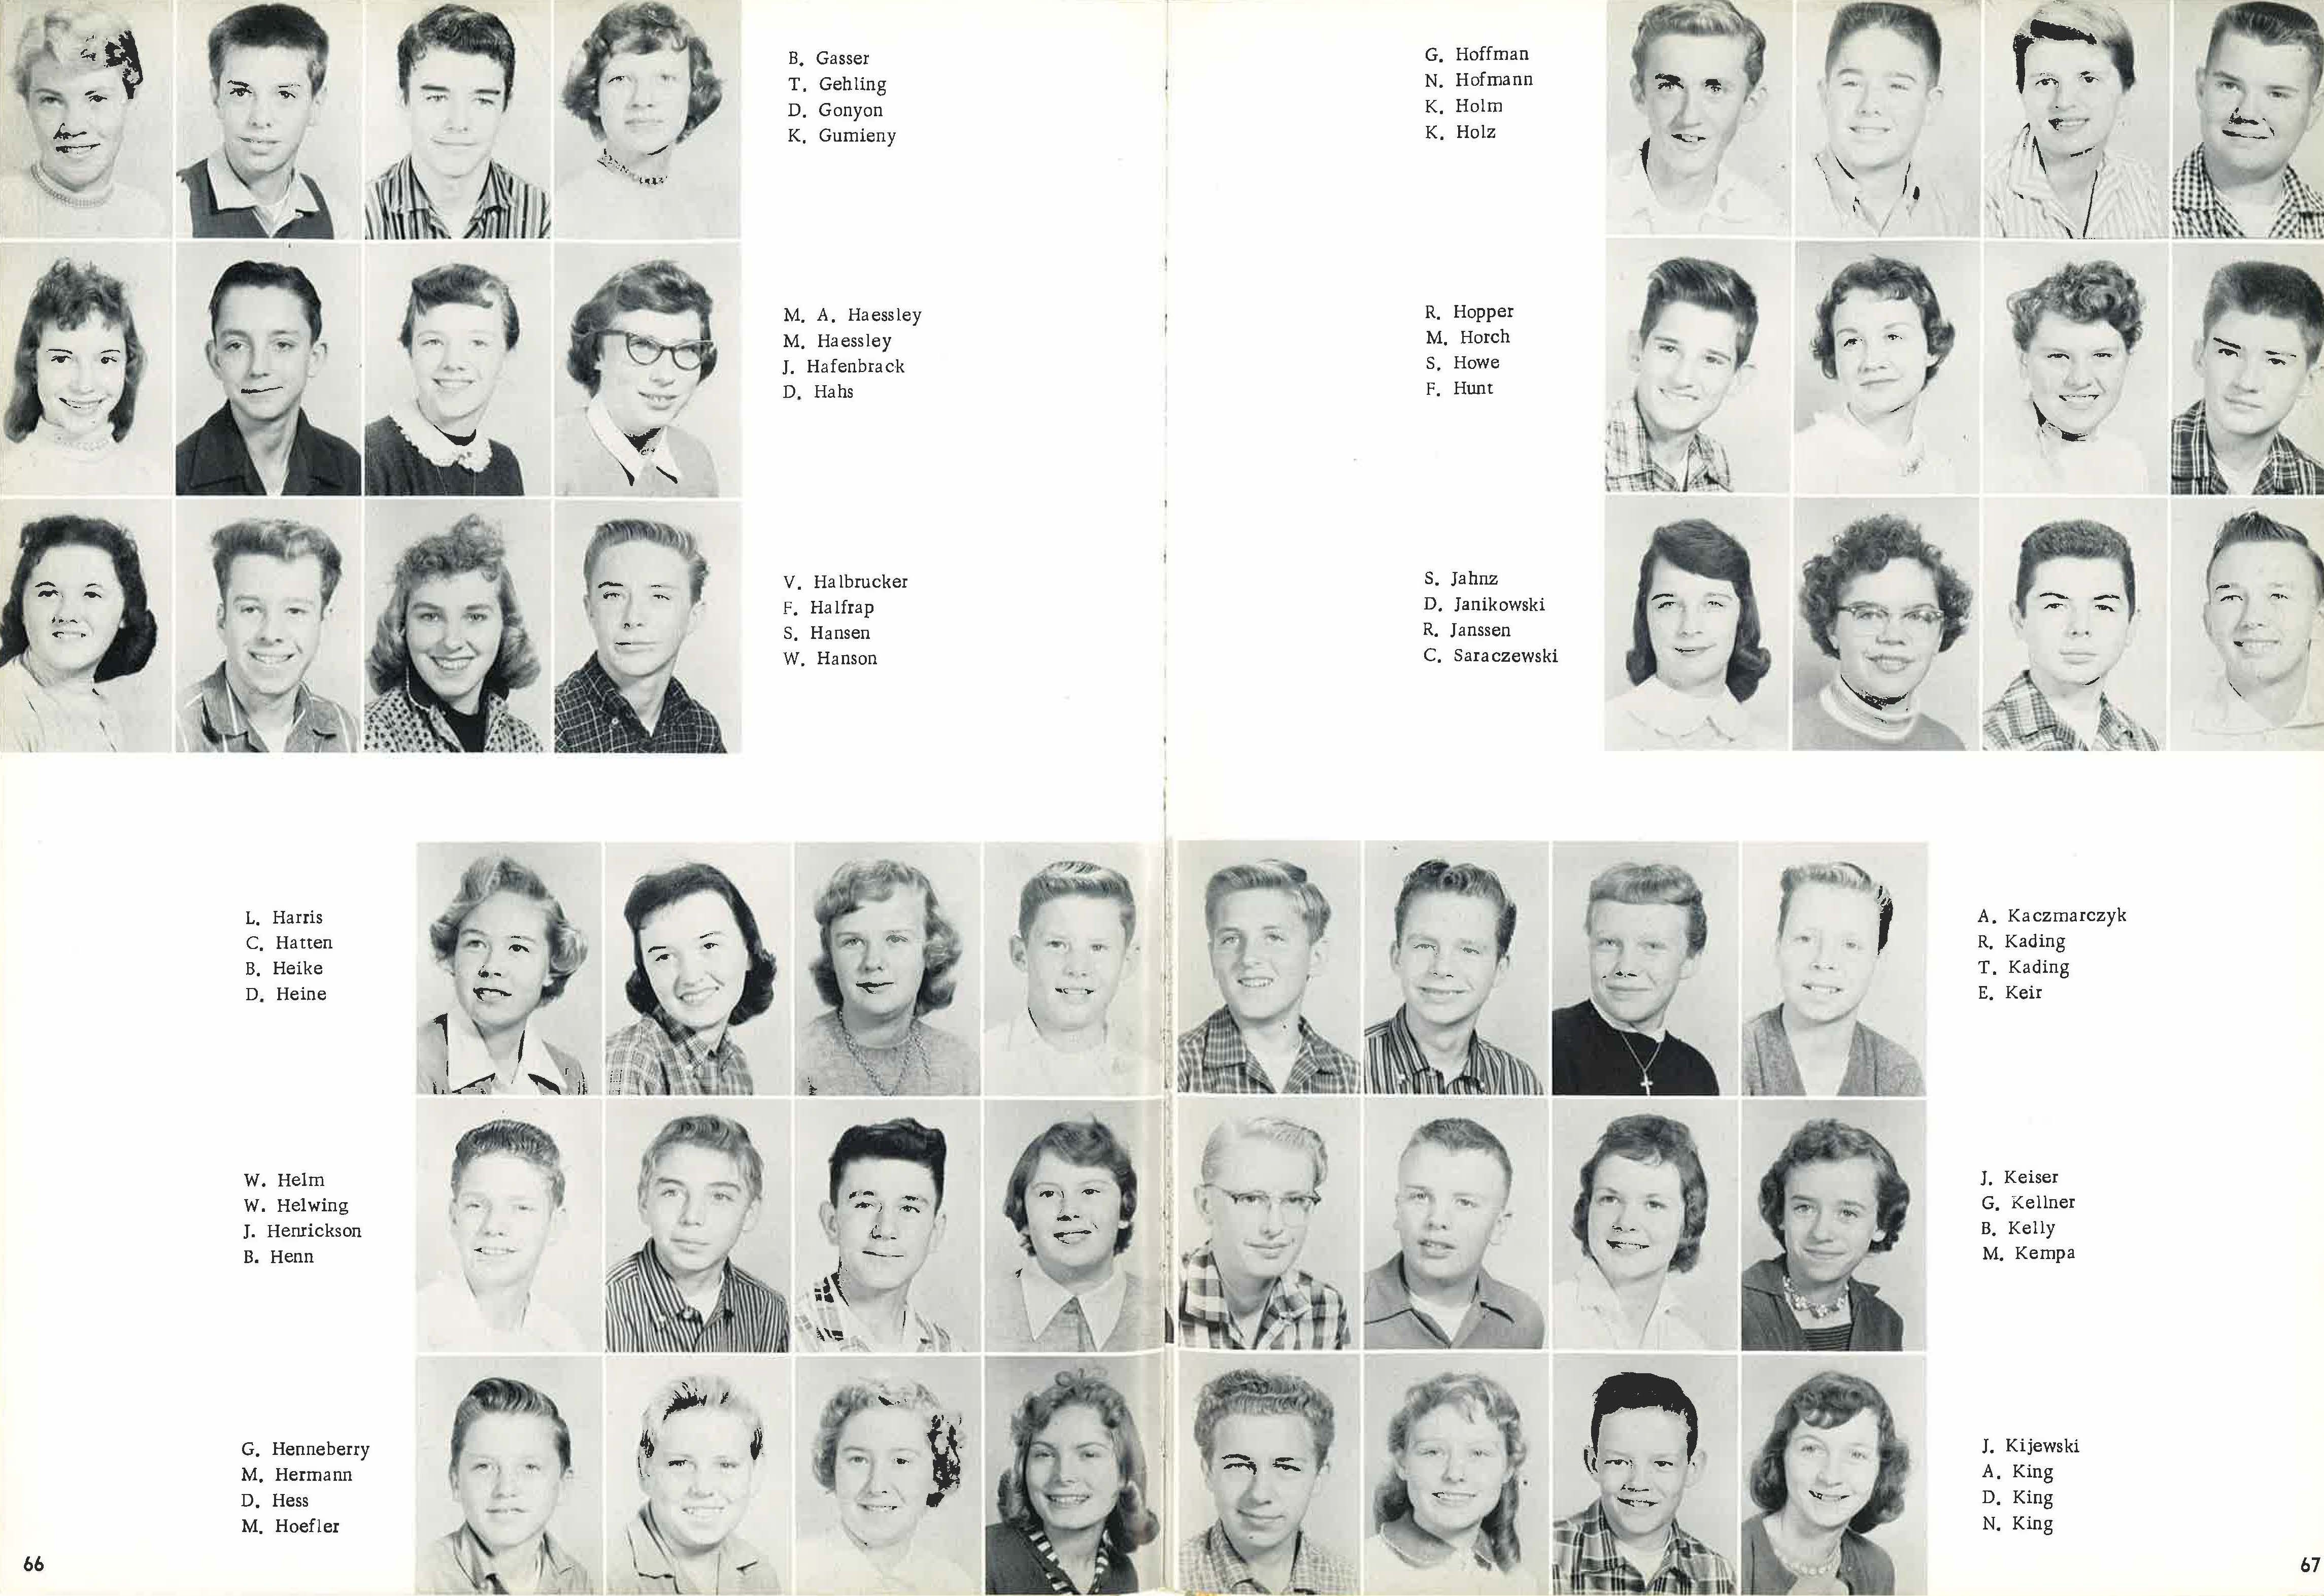 1958_Yearbook_66-67.jpg